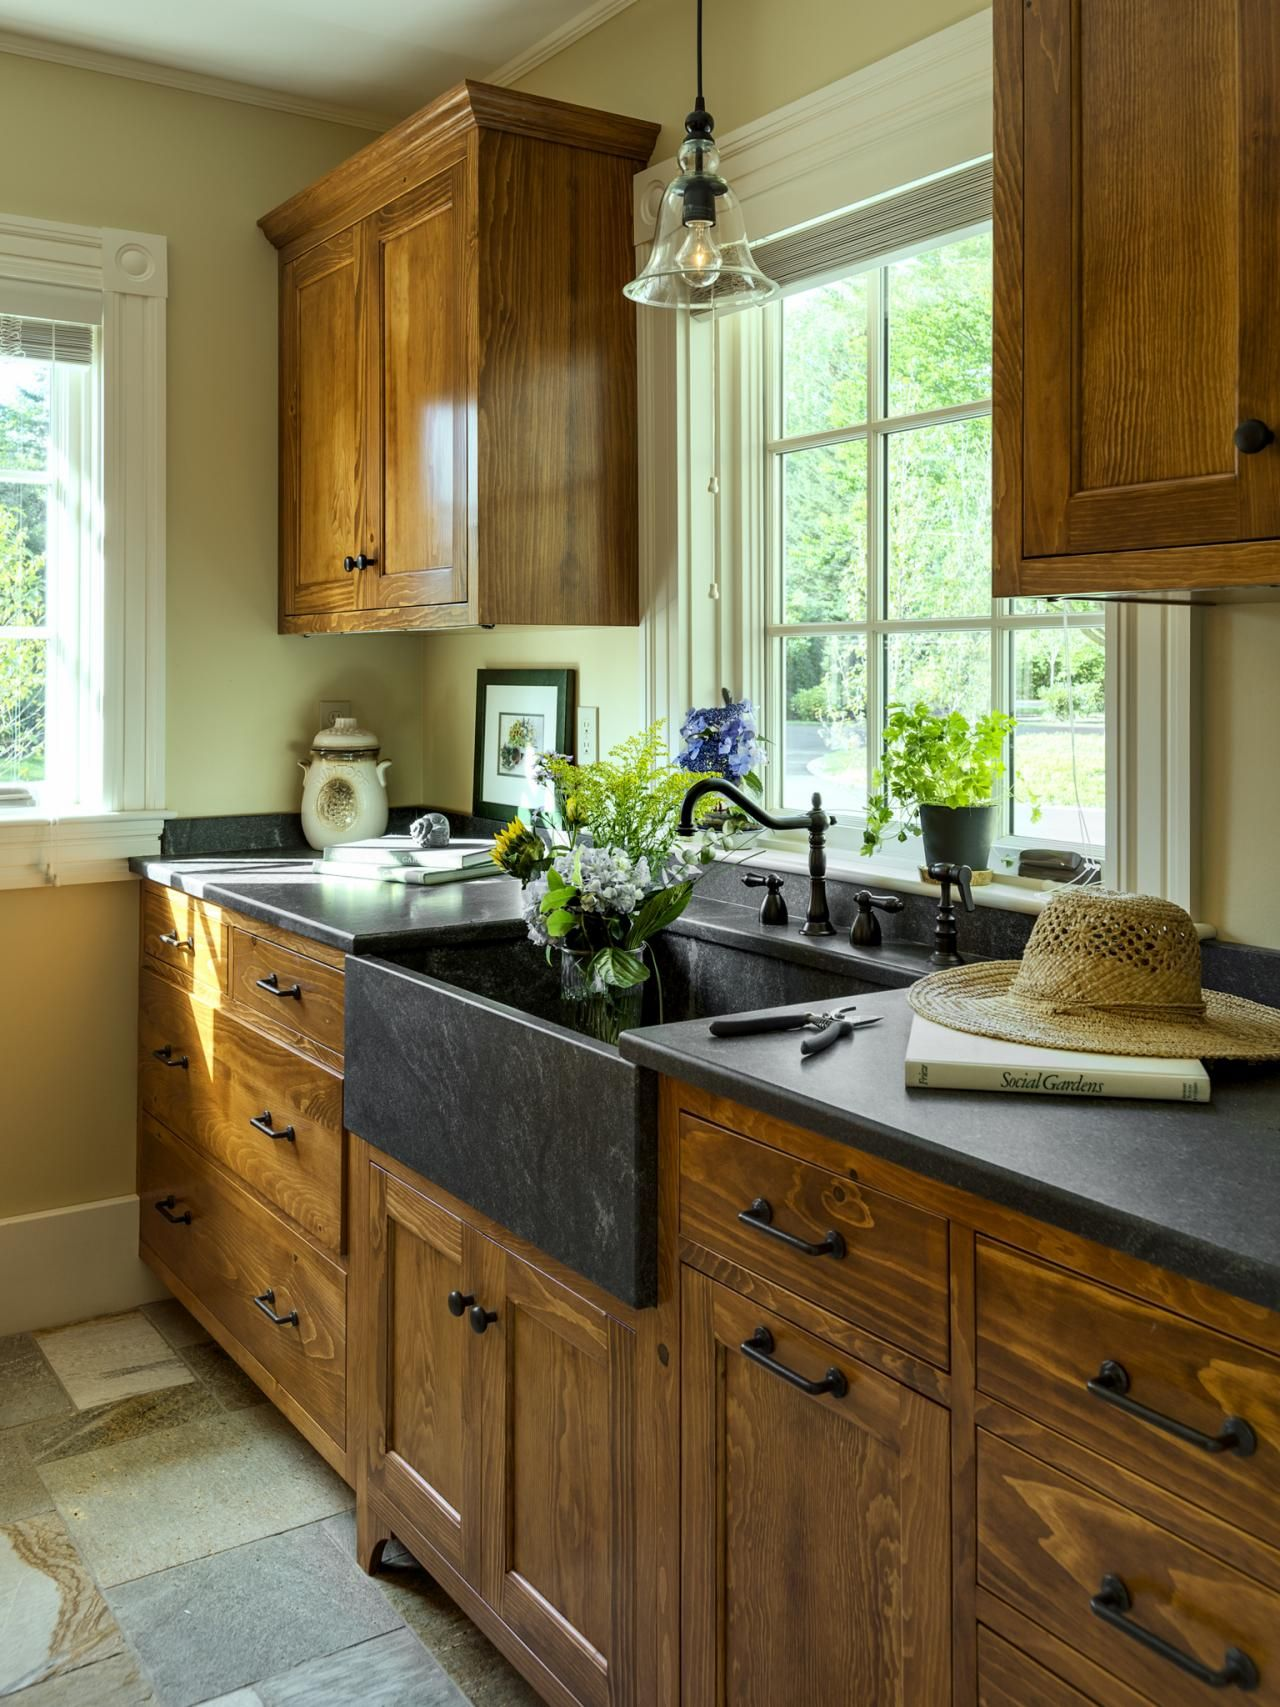 Top 50 Pinterest Gallery 2014 Rustic Kitchen Cabinets Kitchen Cabinet Design Rustic Kitchen